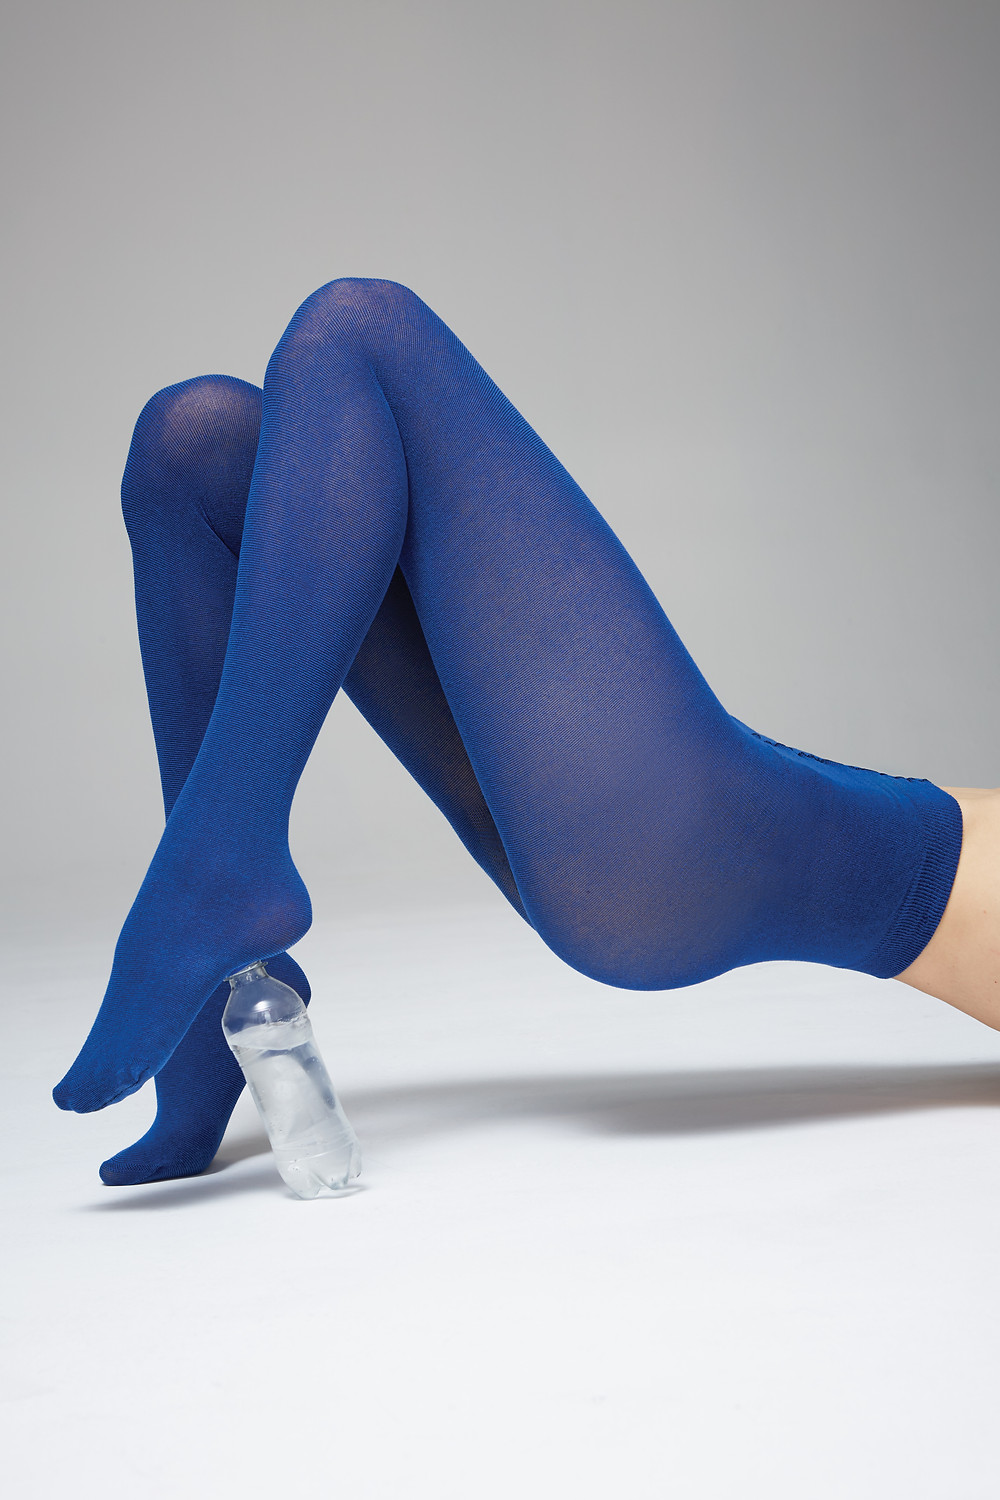 Sustainable Hosiery Tights Made from Recycled Plastic and Upcycled Cotton Australia